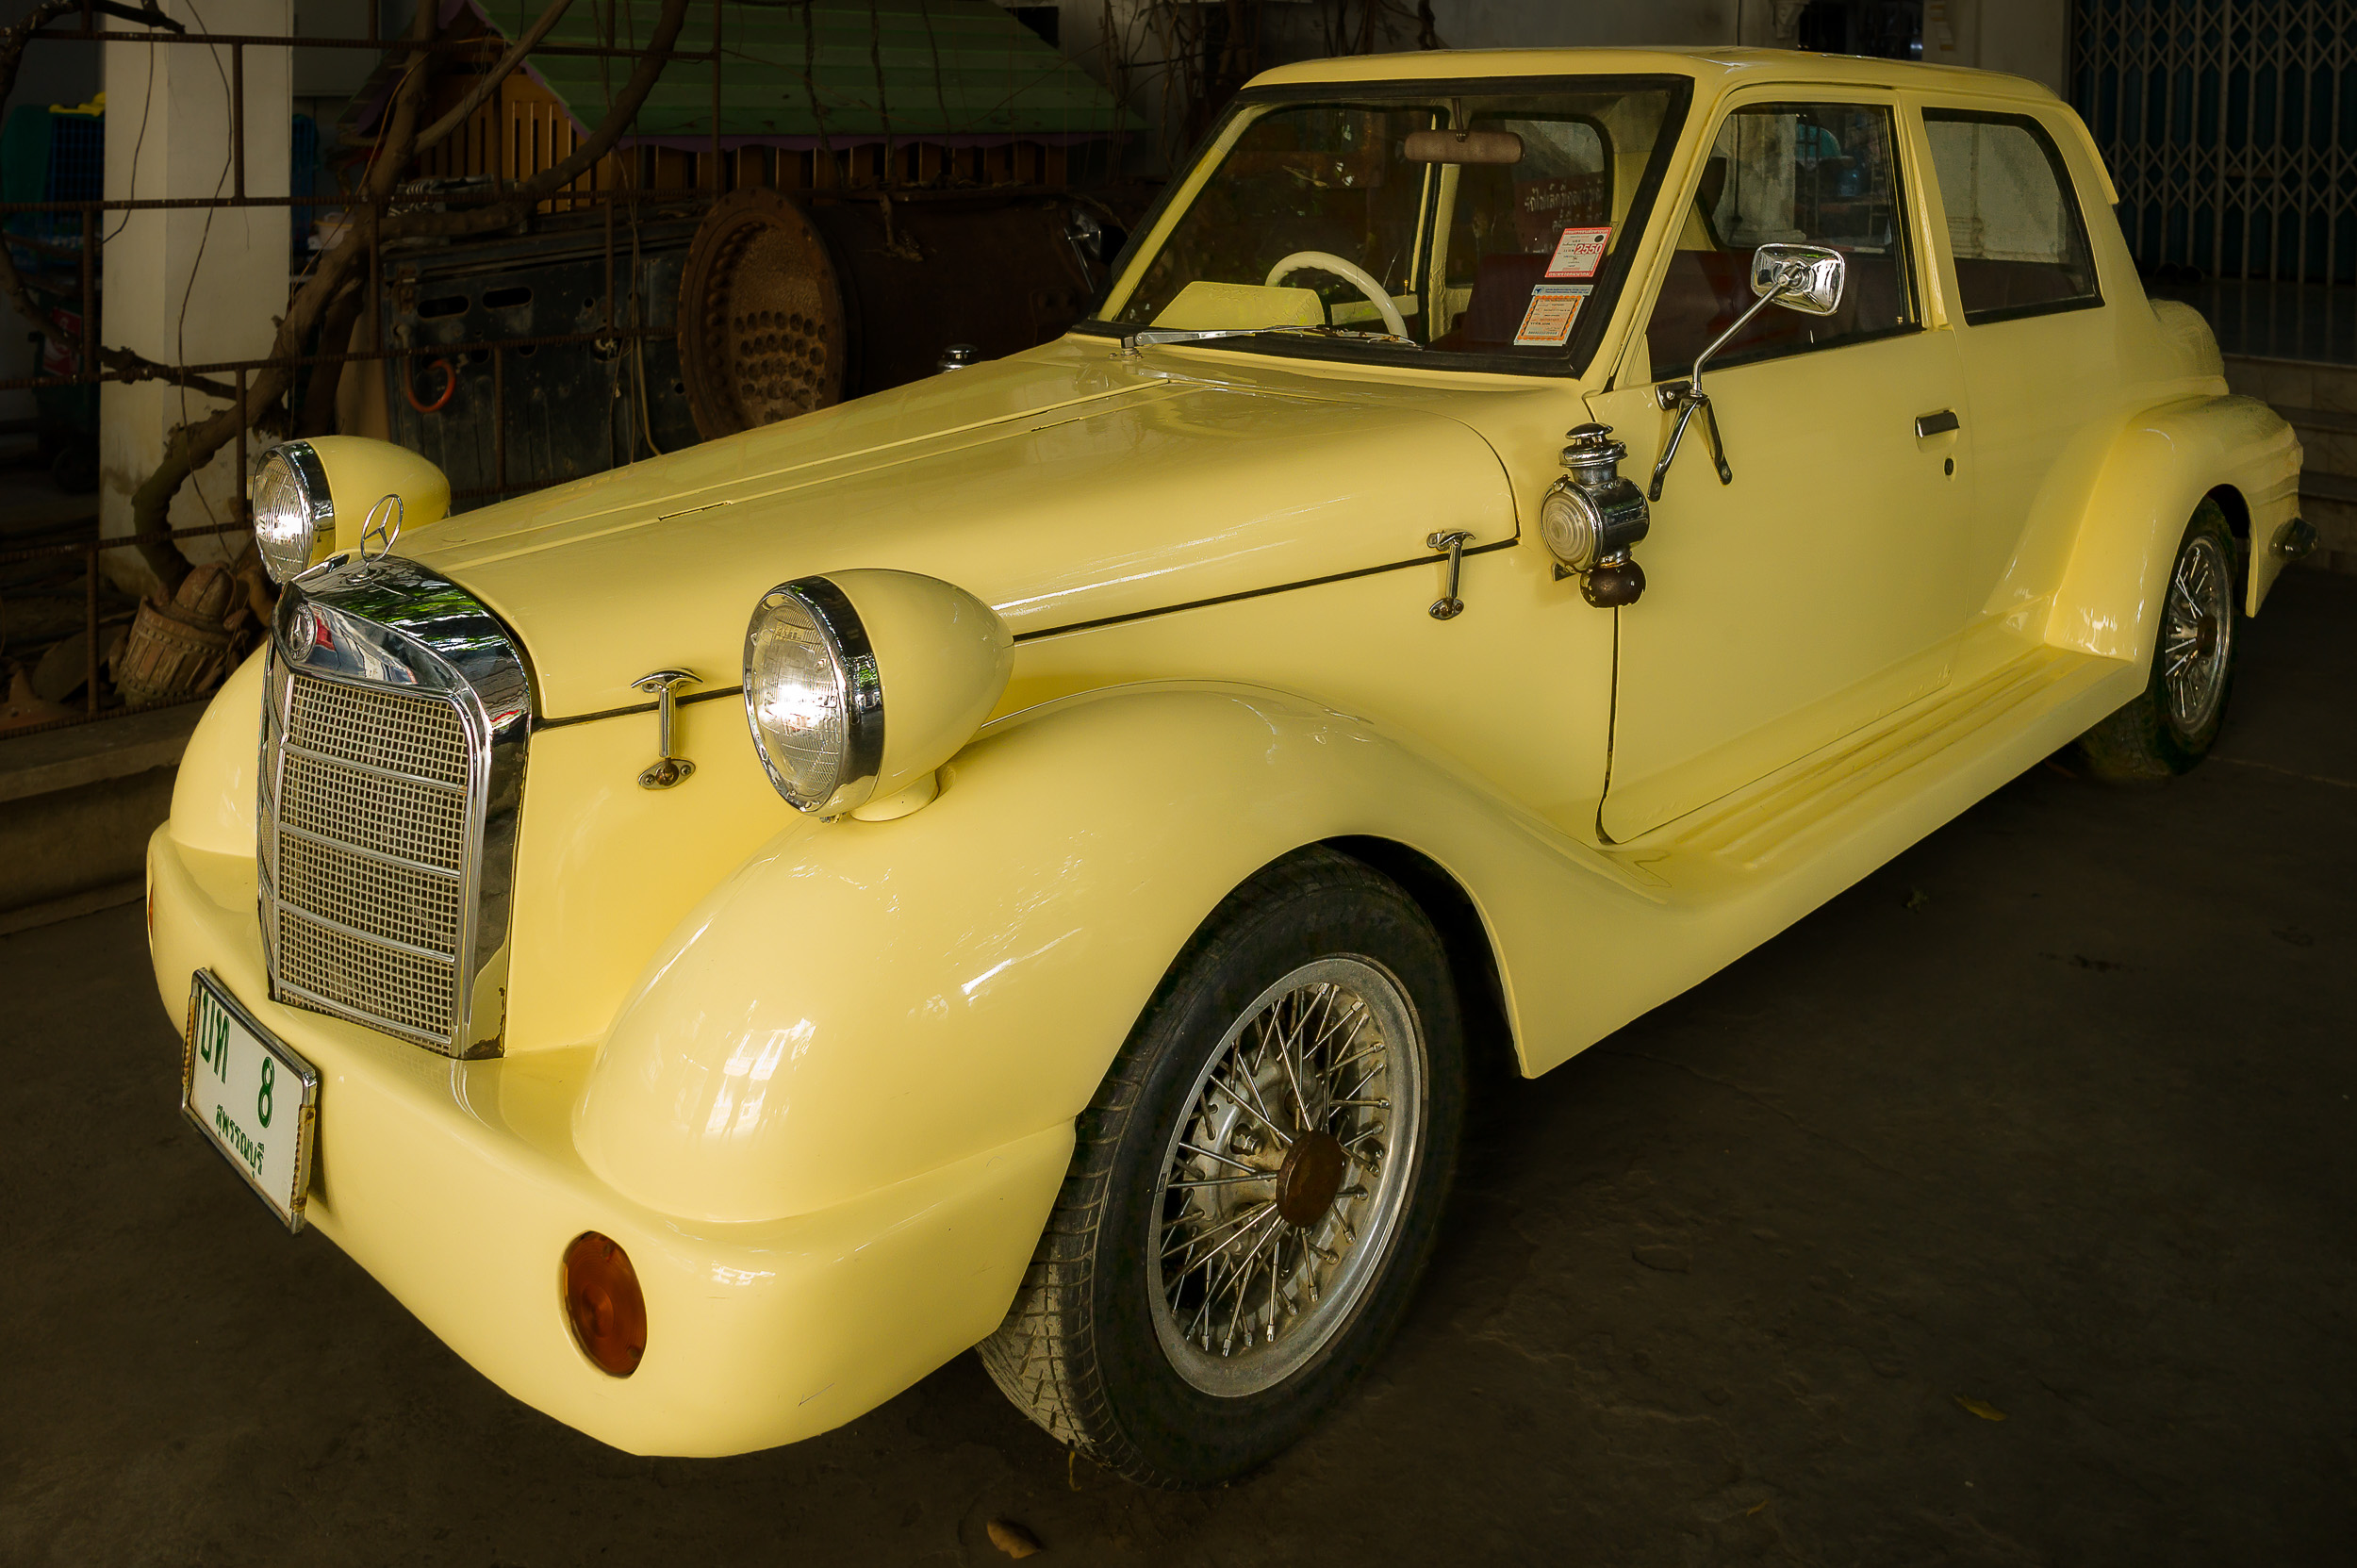 A beautifully restored  mercedes benz  in the  museum  alongside the  Bridge On The River Kwai  near  Kanchanaburi  in  Thailand .